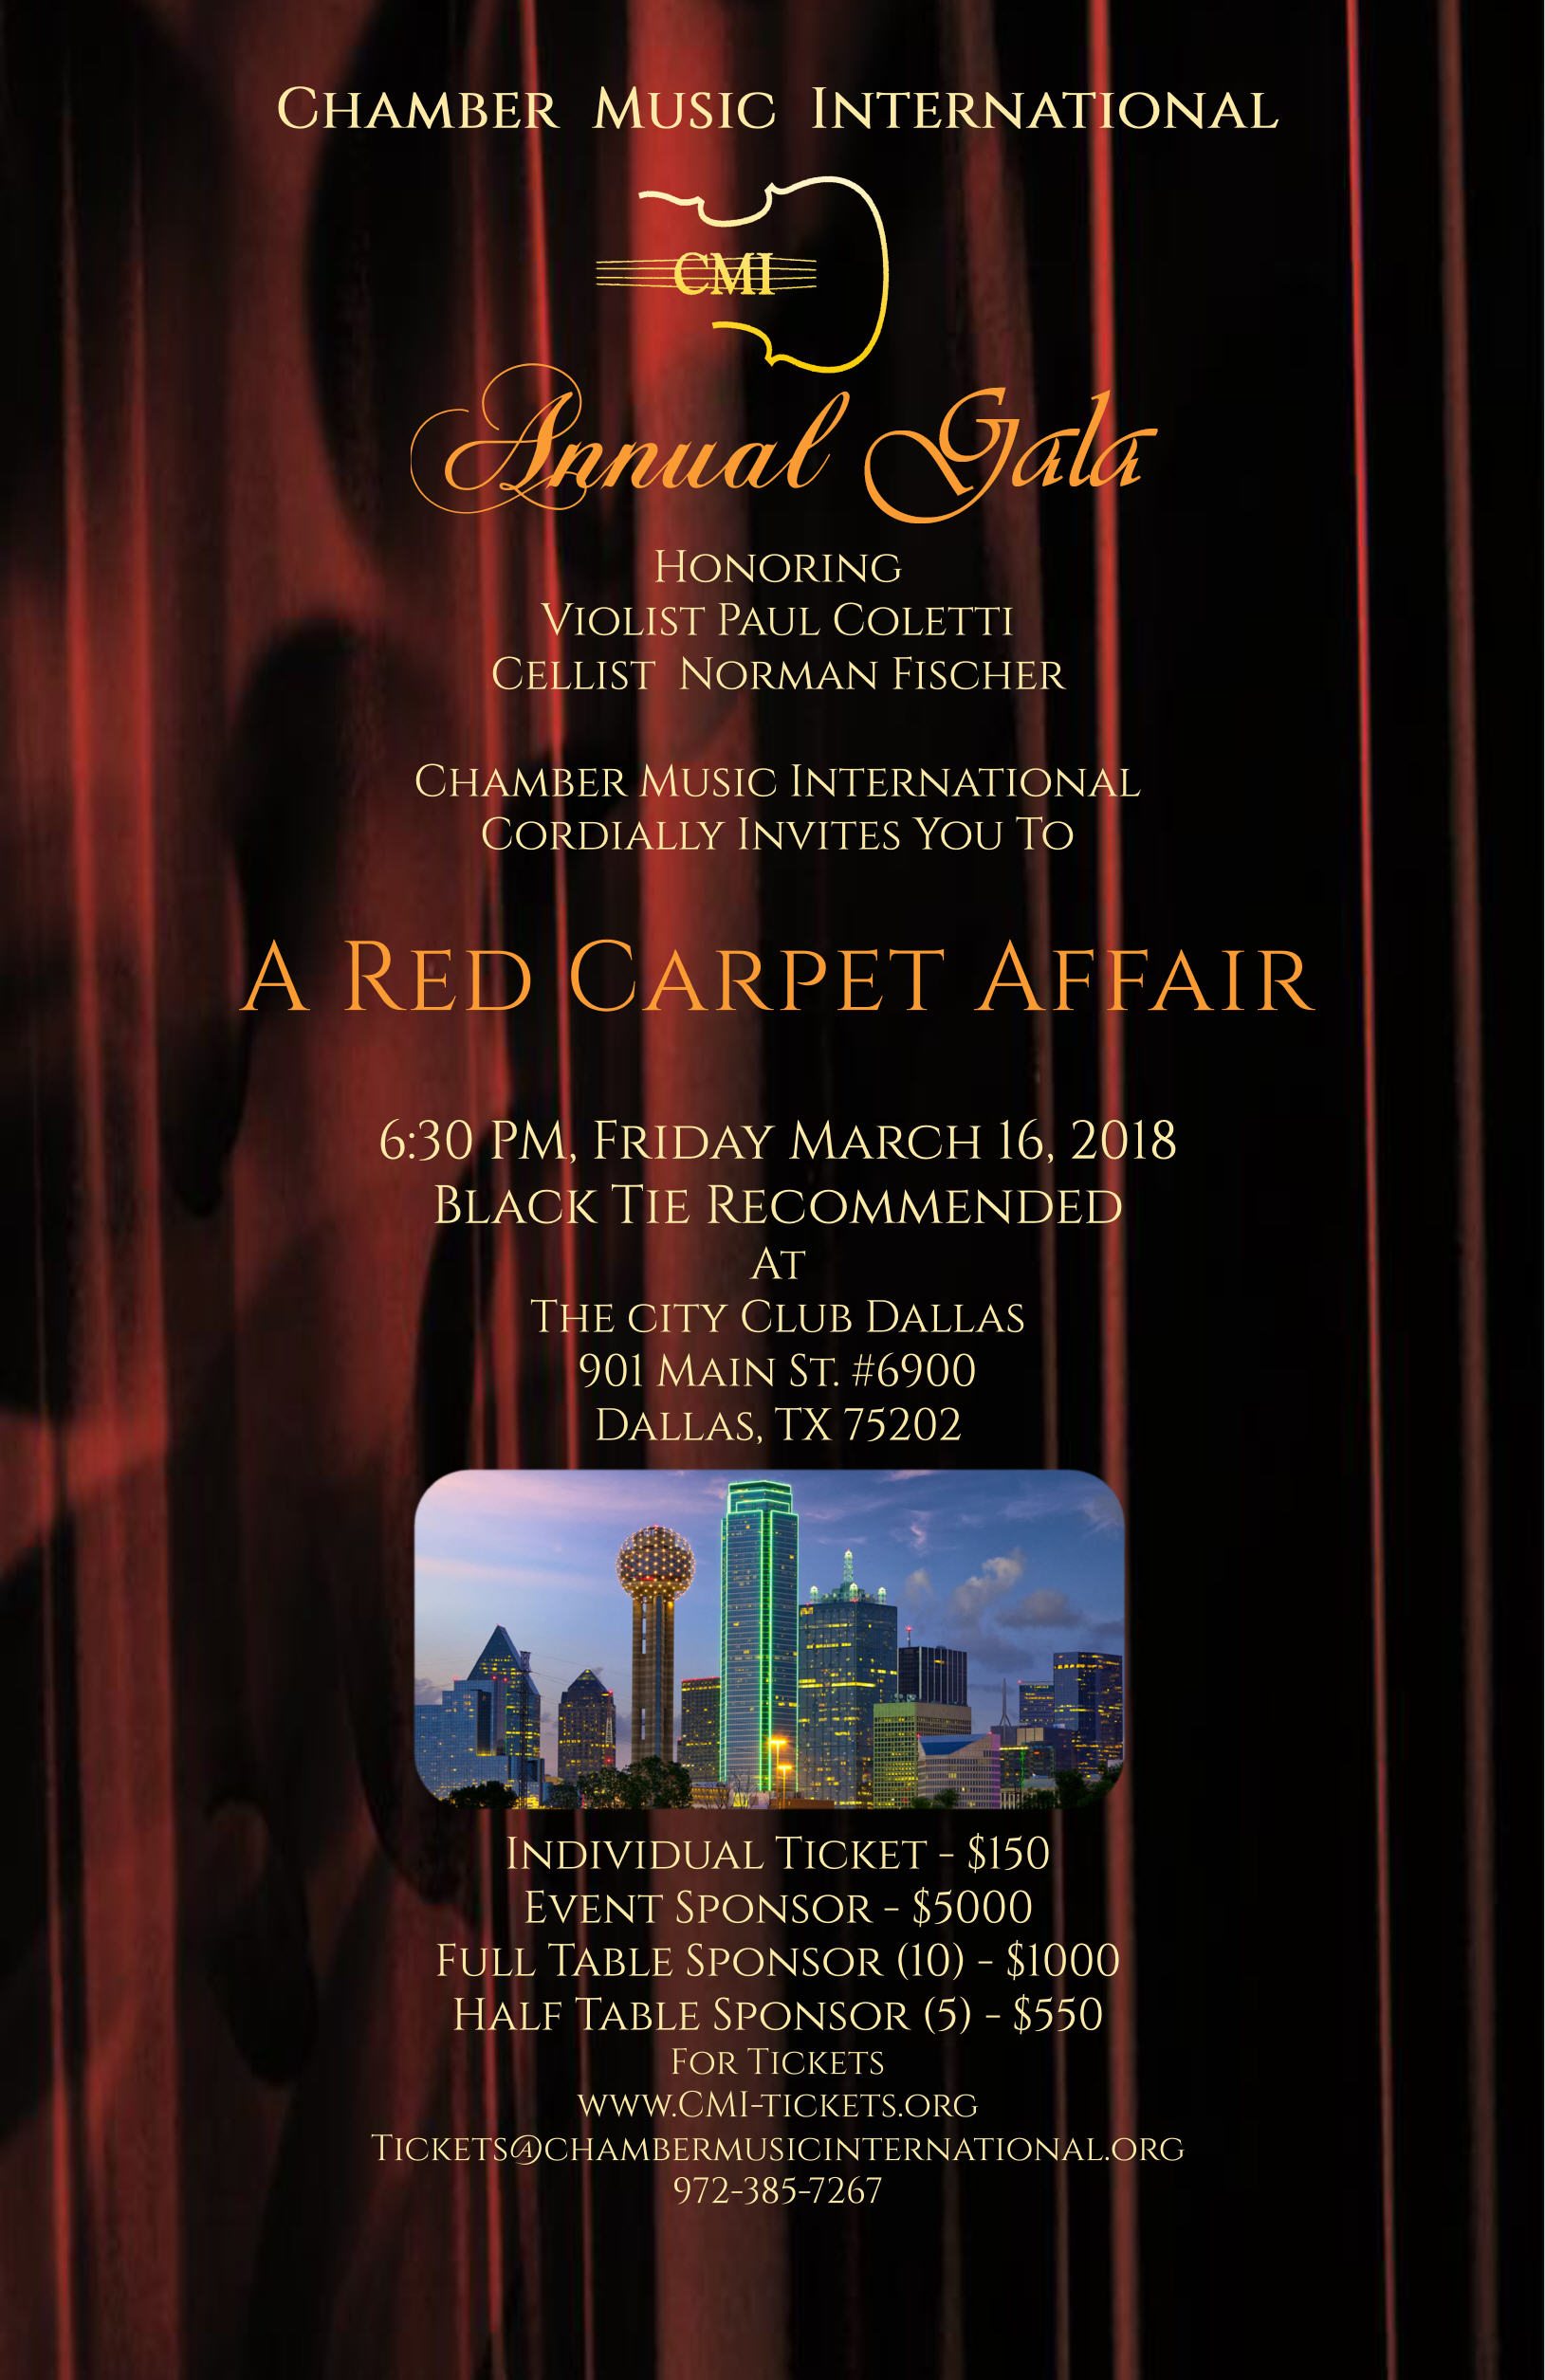 Join us for our 32nd Annual Gala 'A Red Carpet Affair' benefiting CMI's 2018-2019 Concert Season!  To purchase tickets, please click on the links below or call 972-385-7267